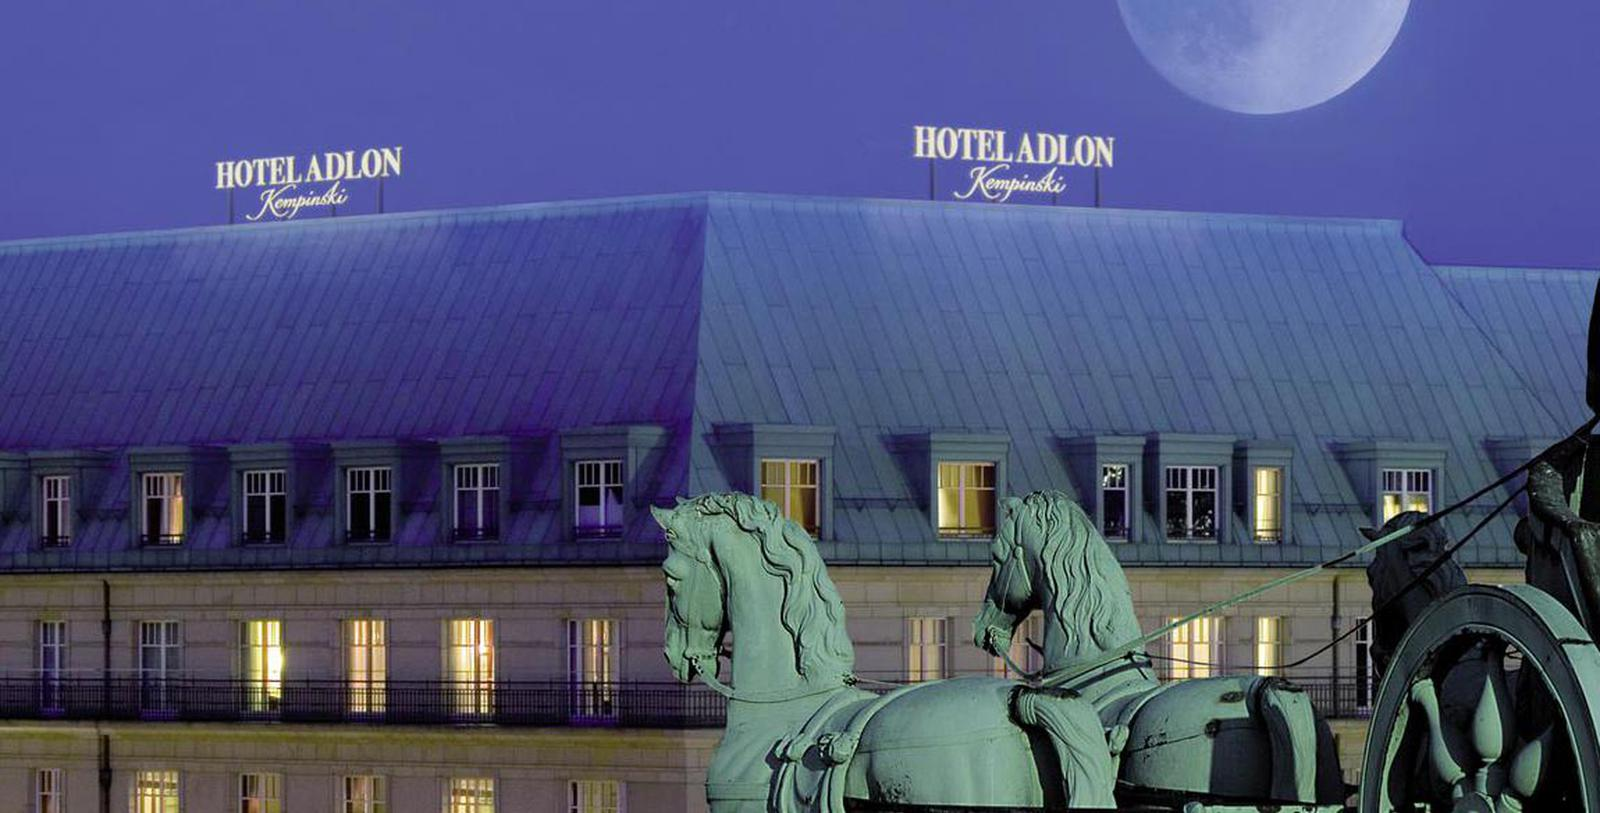 Image of Exterior at Night, Hotel Adlon Kempinski, Berlin, Germany, 1907, Member of Historic Hotels Worldwide, Special Offers, Discounted Rates, Families, Romantic Escape, Honeymoons, Anniversaries, Reunions